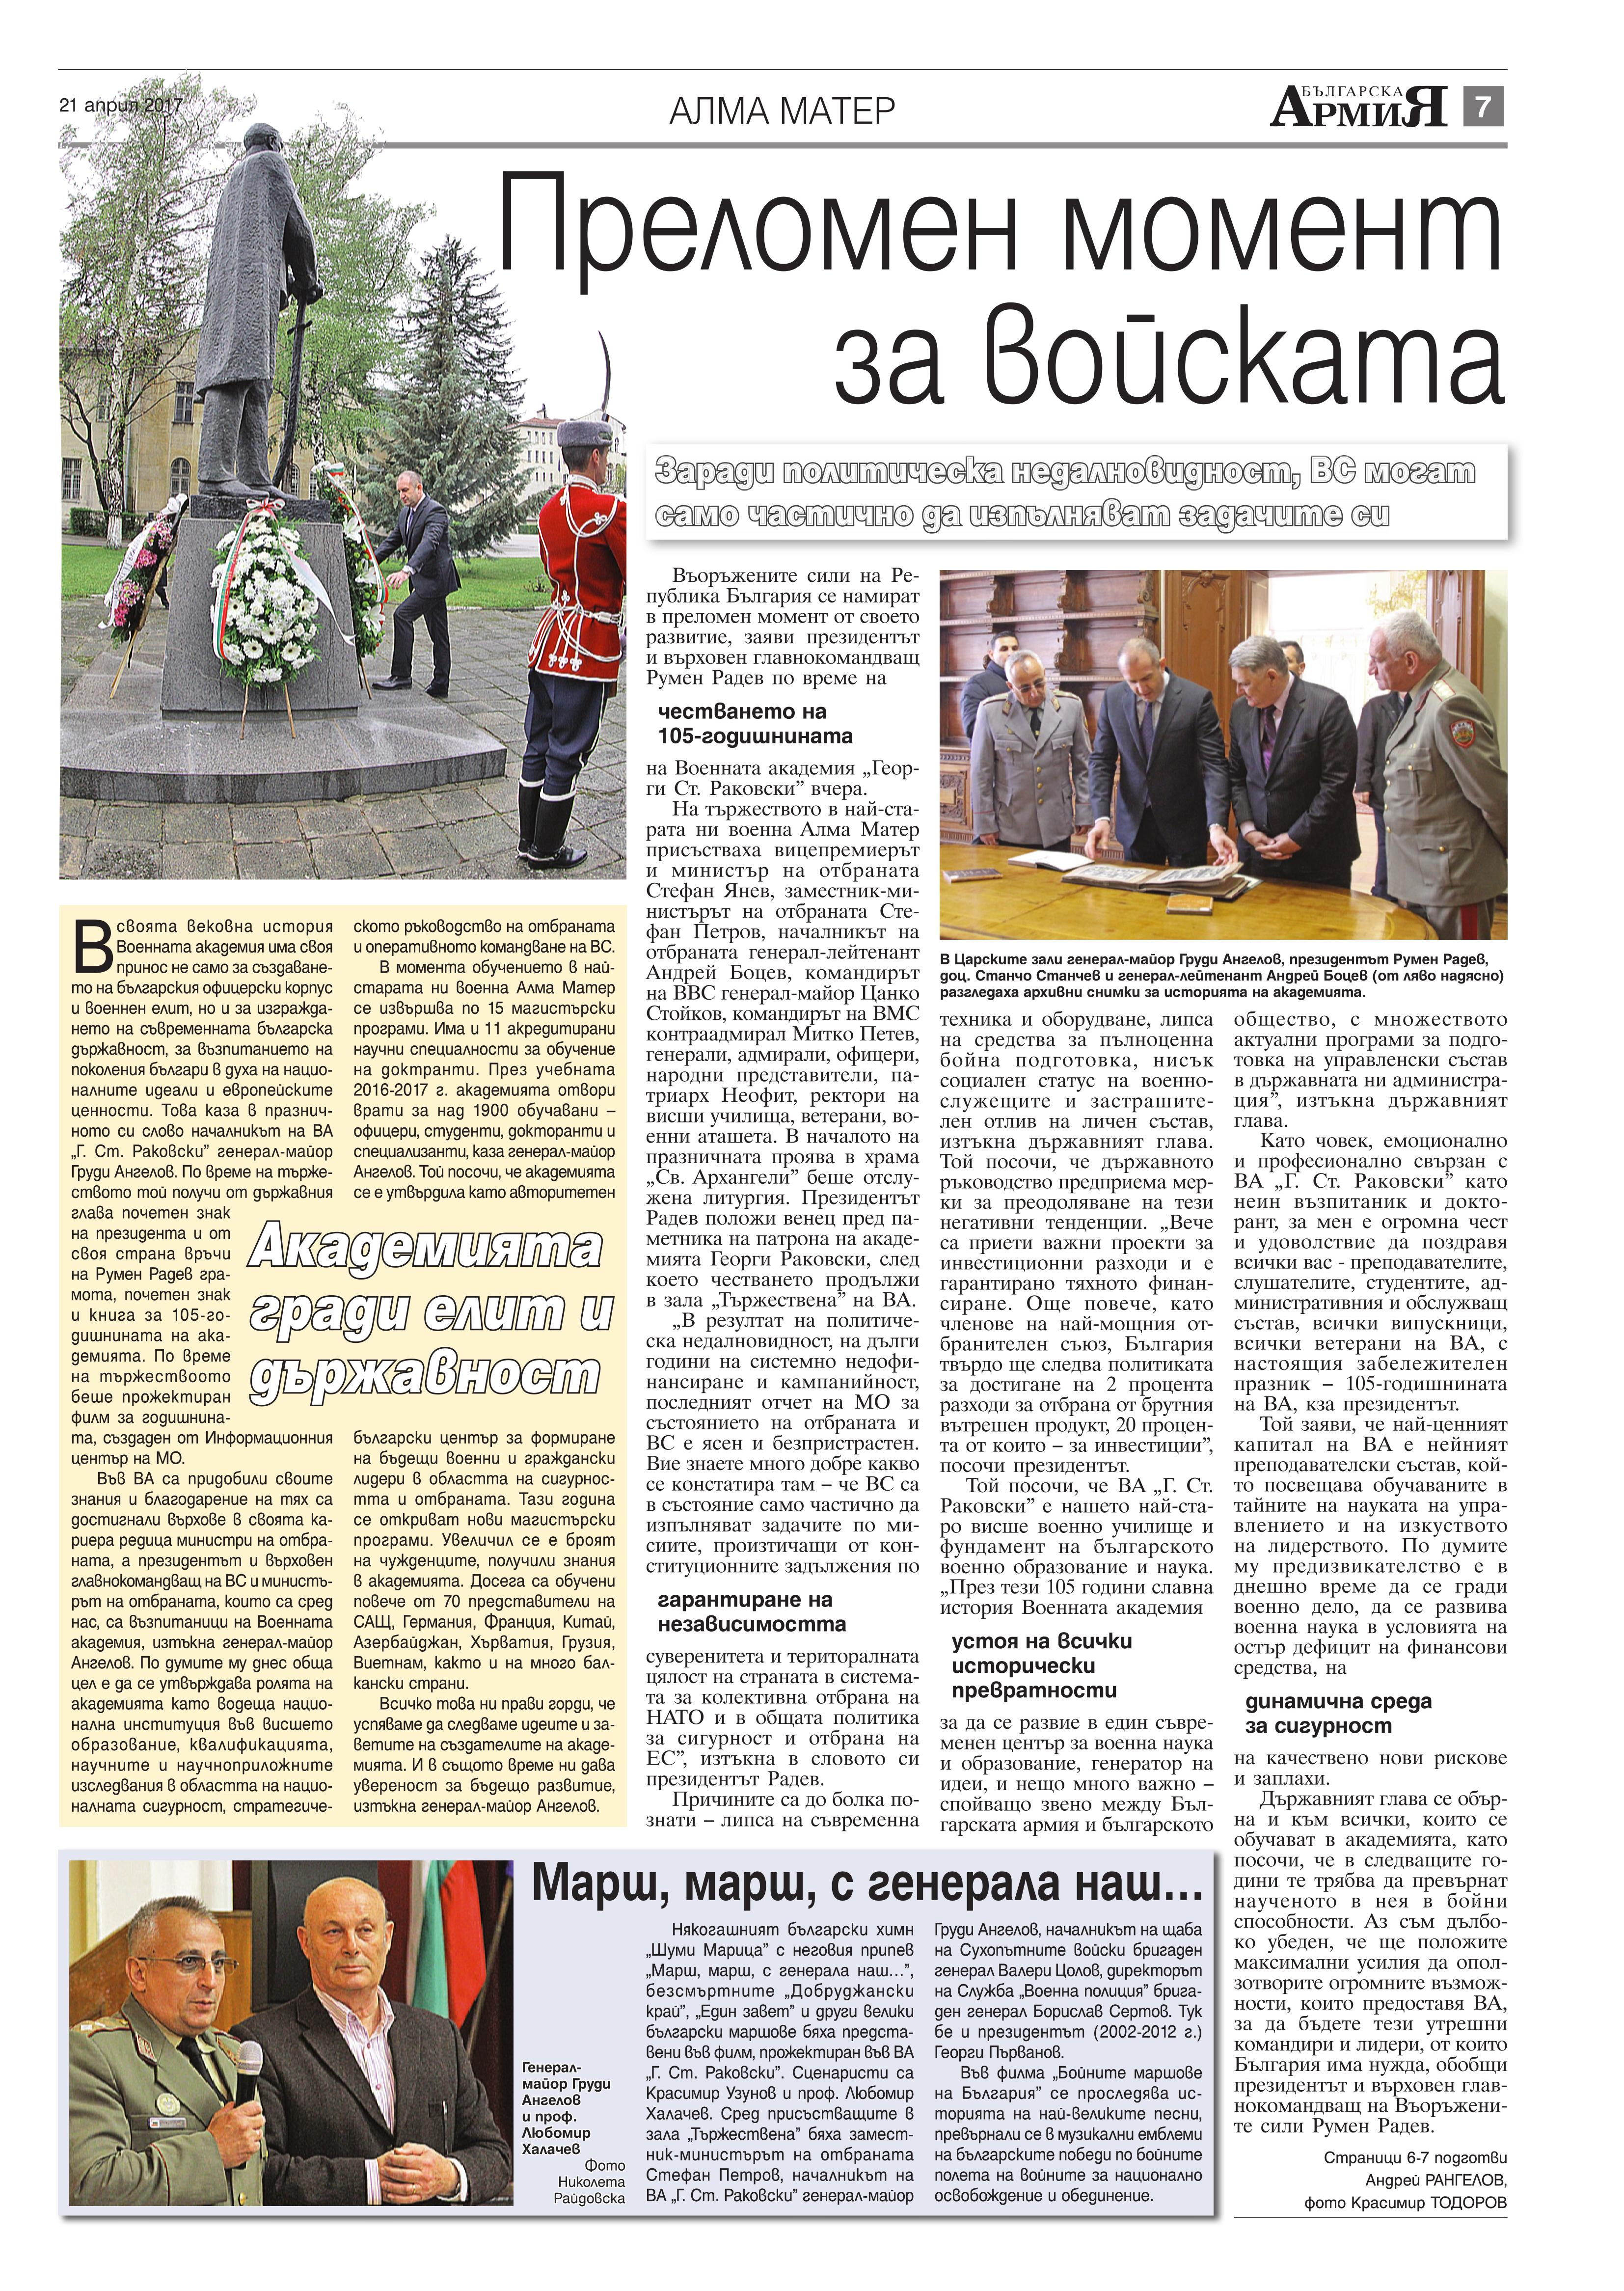 http://armymedia.bg/wp-content/uploads/2015/06/07.page1_-19.jpg